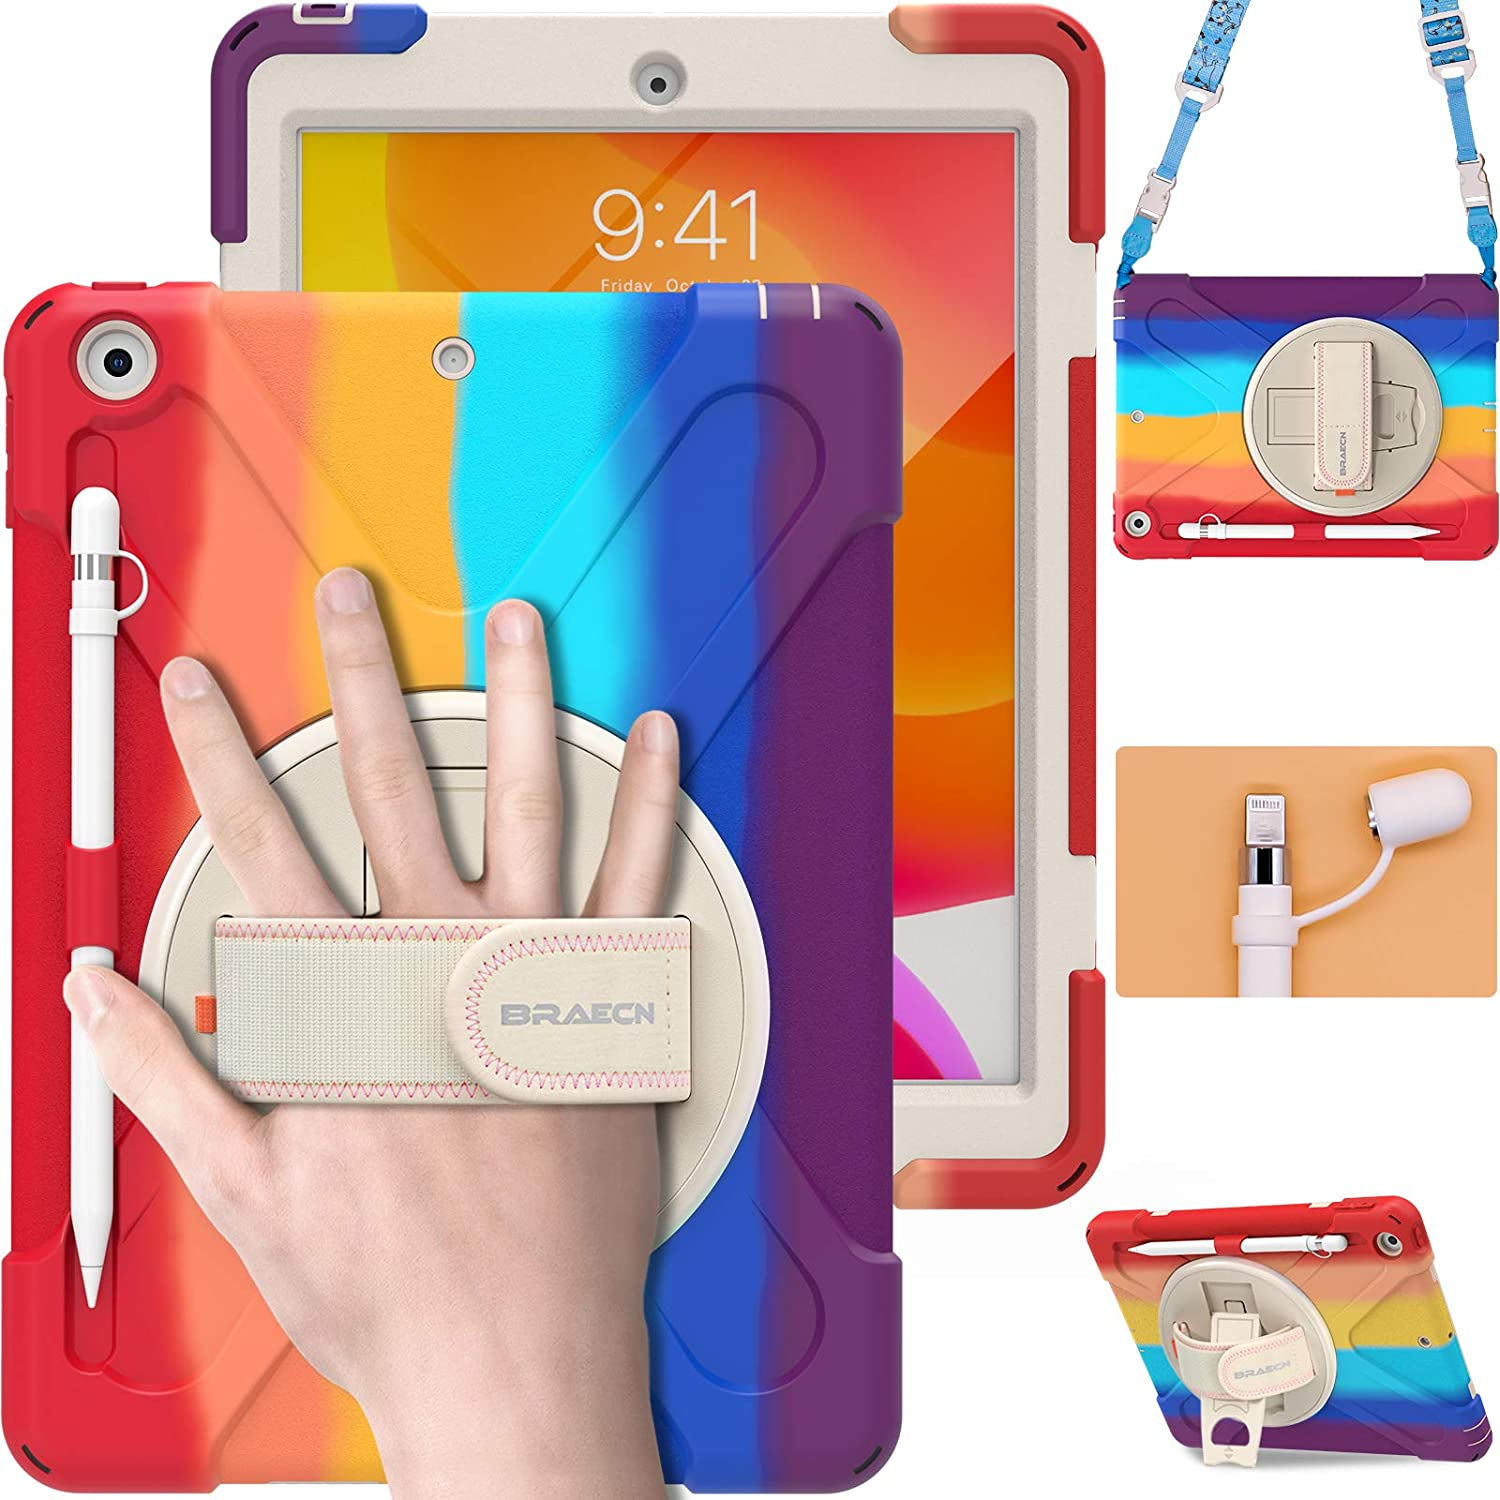 BRAECN iPad 8th / 7th Generation Case, Heavy Duty Rugged Case with Screen Protector, Pencil Holder, Pencil Cap Holder, Hand Strap, Kickstand, Shoulder Strap for Apple iPad 10.2 Inch 2020/2019-Rainbow